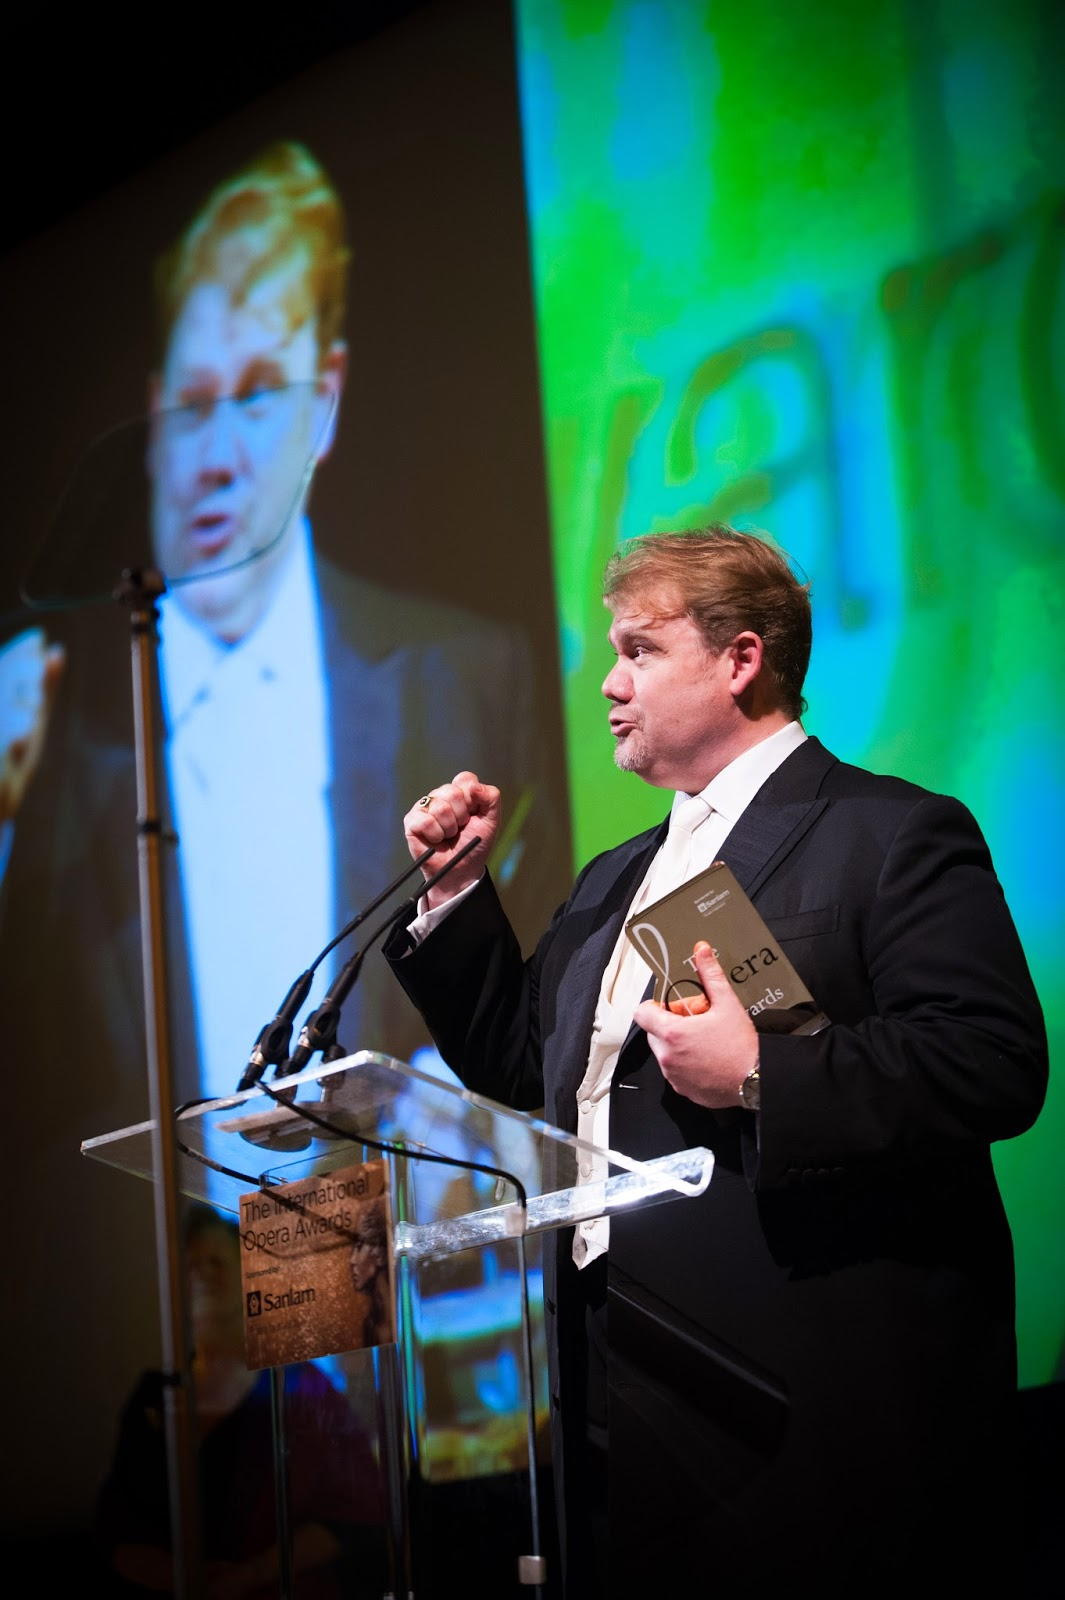 Stuart Skelton receiving award for Male Singer at the Opera Awards: credit Jim Winslet